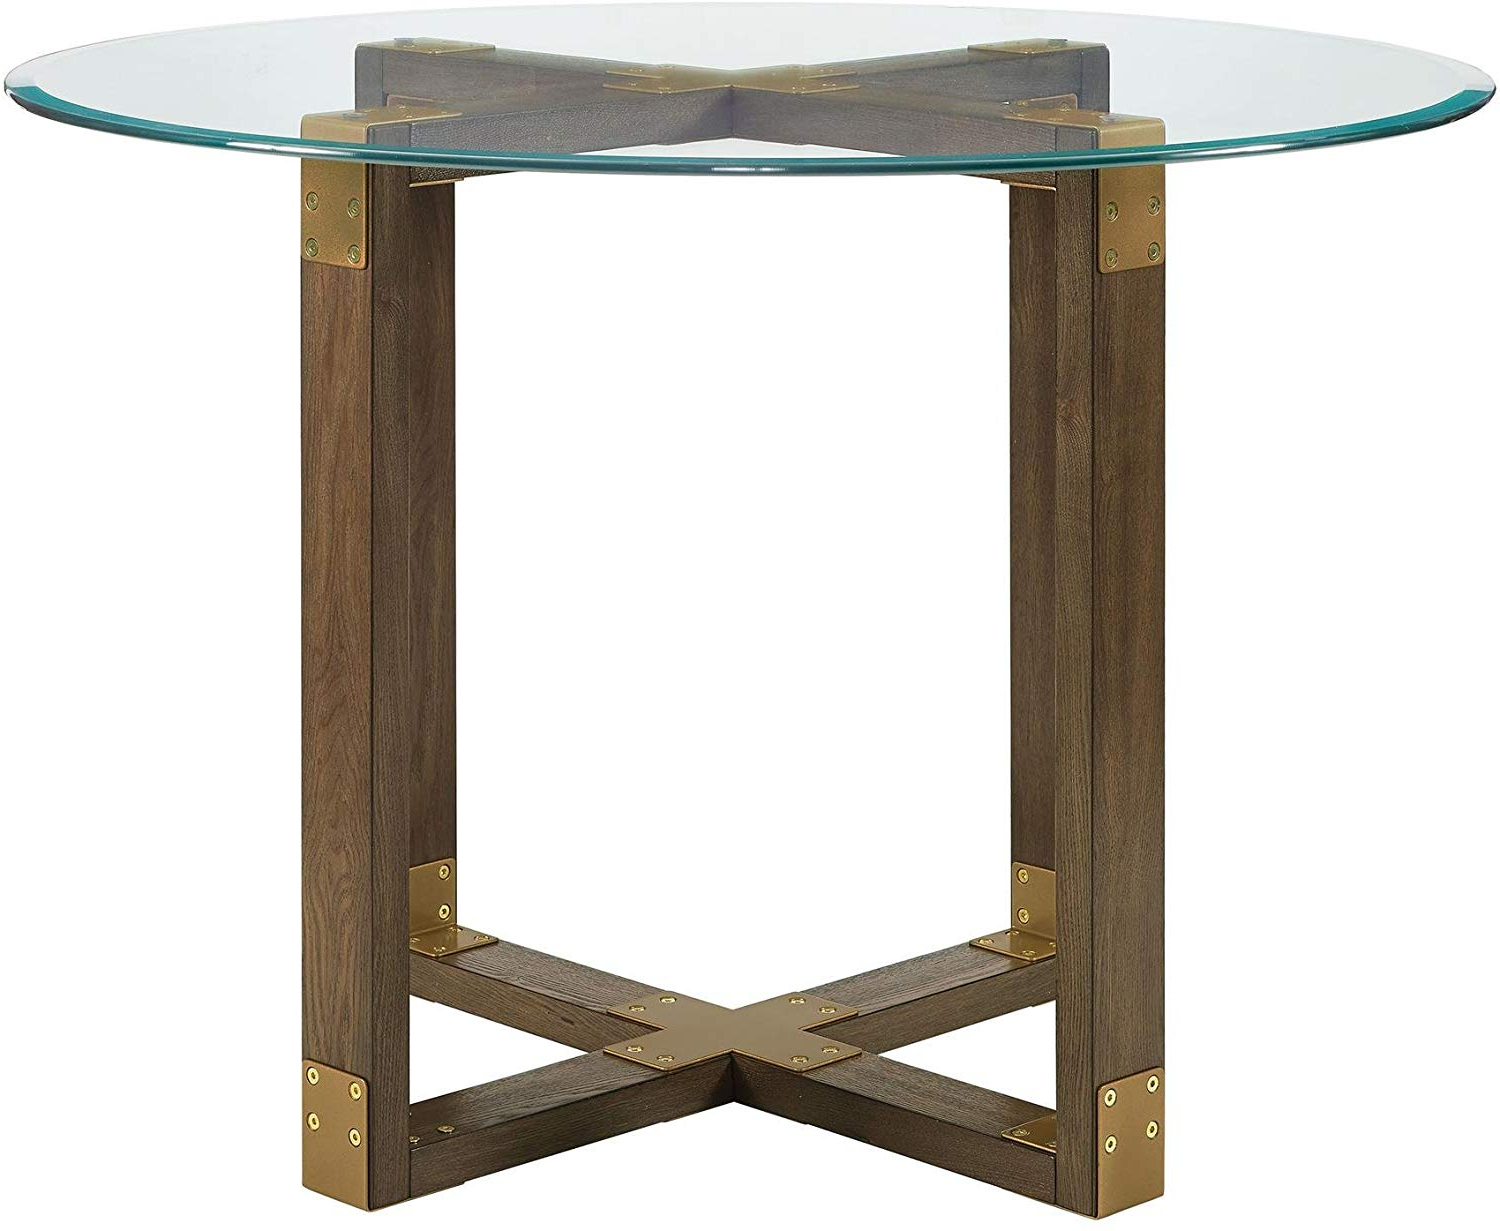 Favorite Small Rustic Look Dining Tables With Regard To Dorel Living Bronx Glass Top Dining Table, Rustic Oak (View 8 of 25)